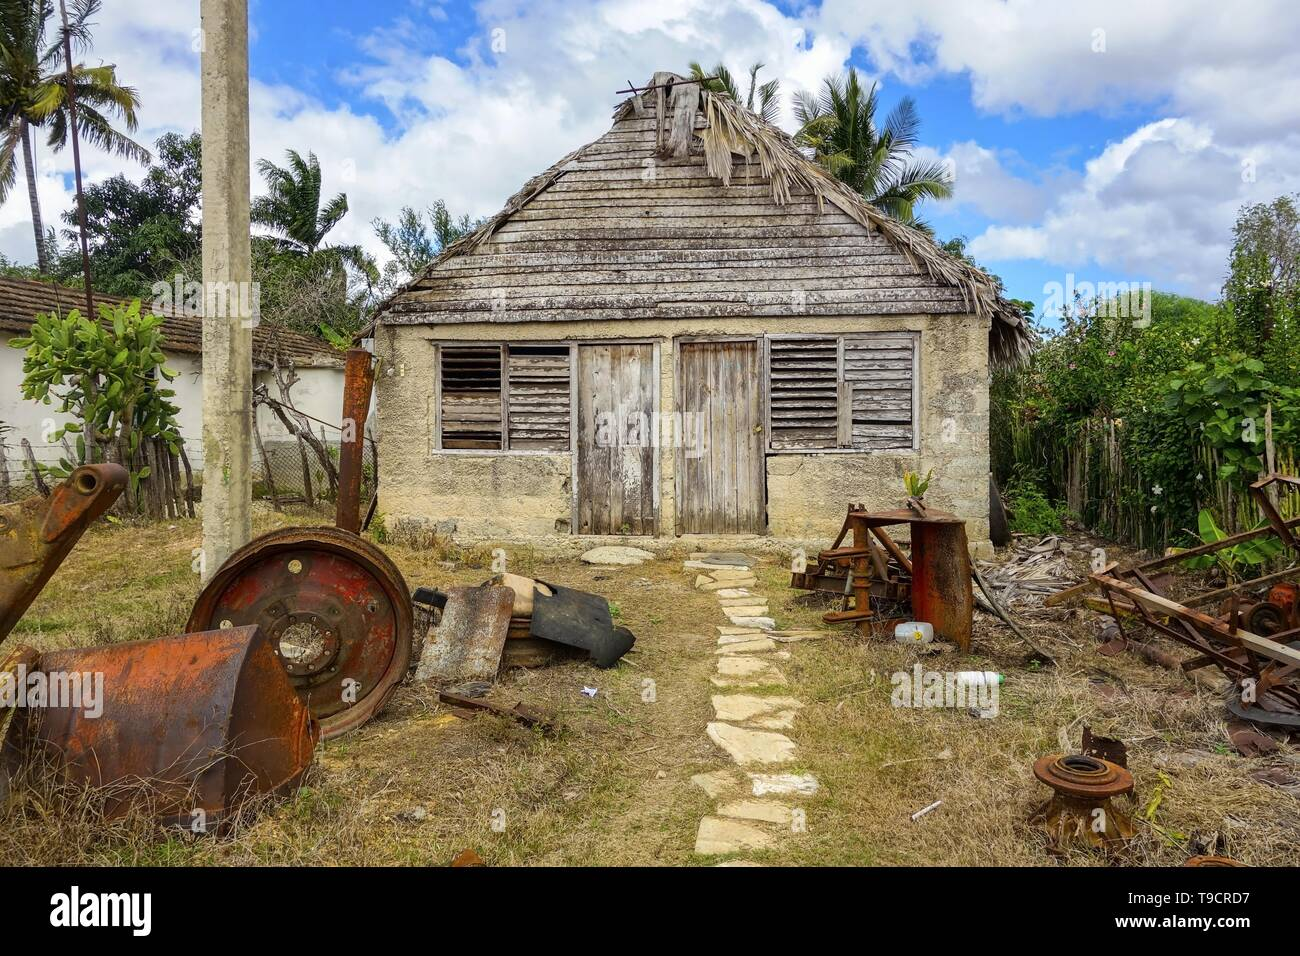 Vintage Old Farm House Building Exterior and Front Yard with Rusted Machinery Pieces in Traditional Cuban Countryside Rural Village Stock Photo